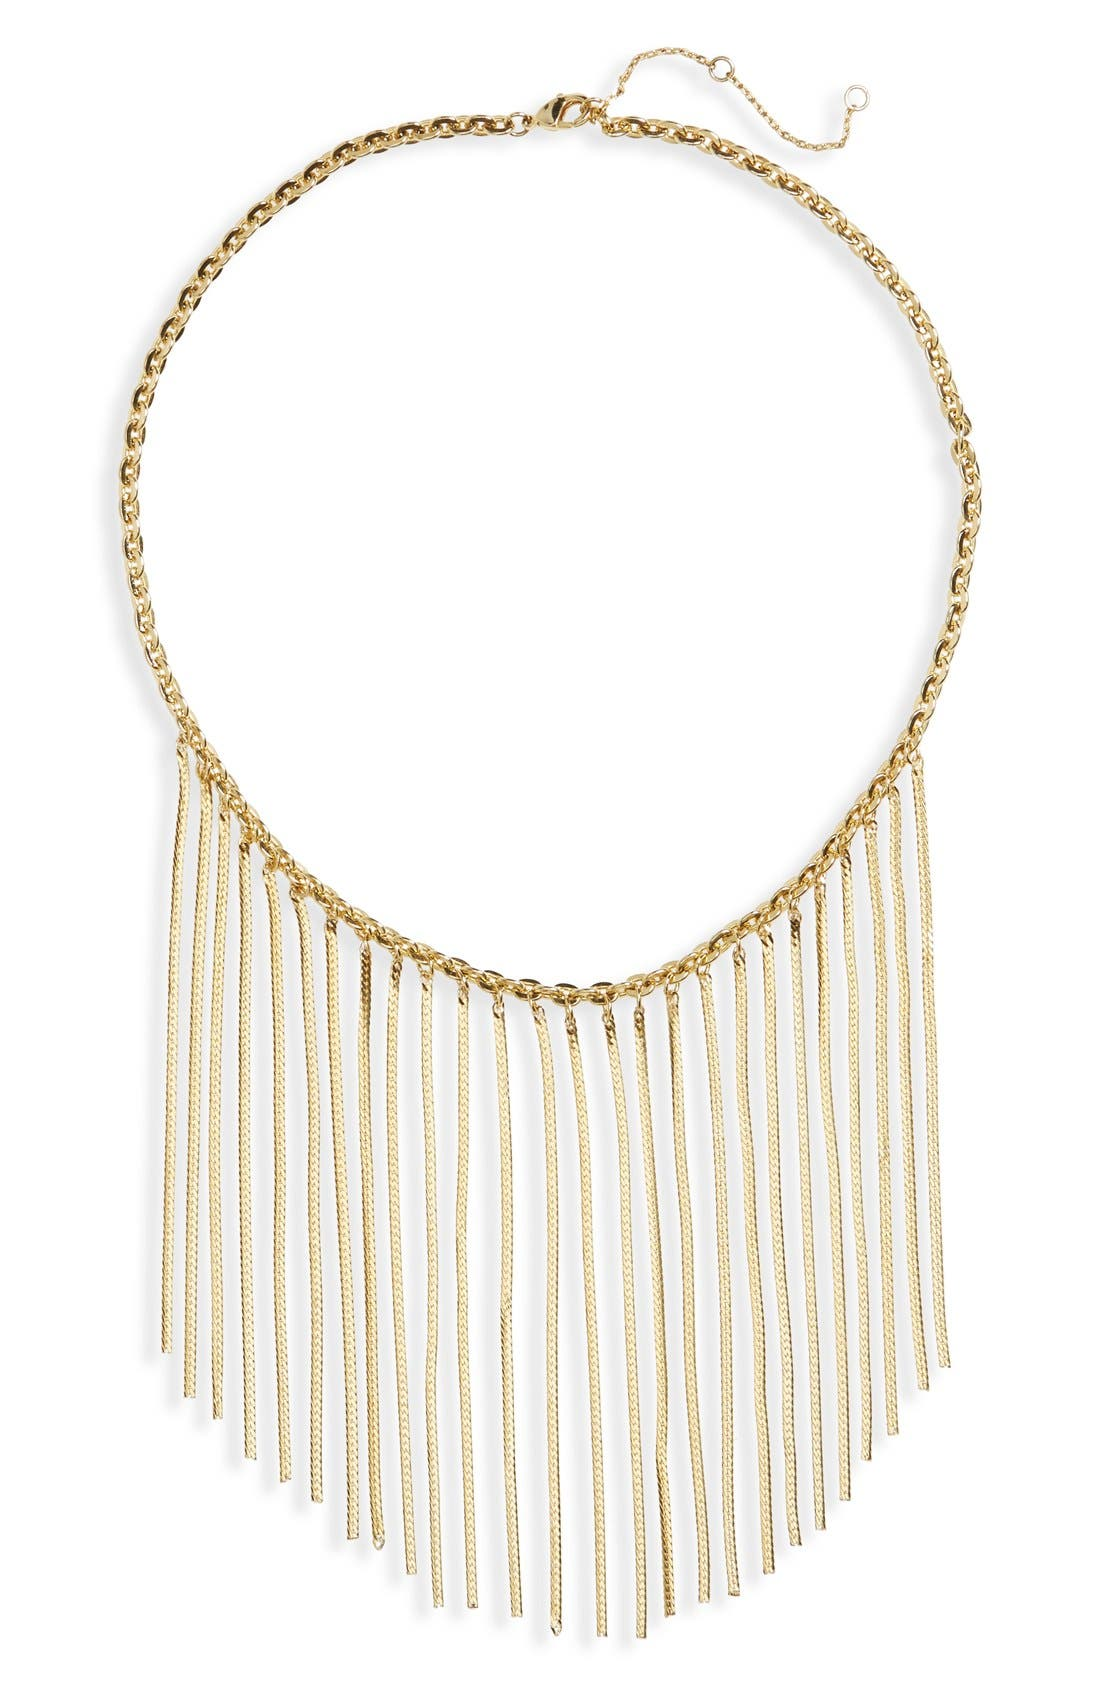 Alternate Image 1 Selected - Leith Chain Fringe Necklace